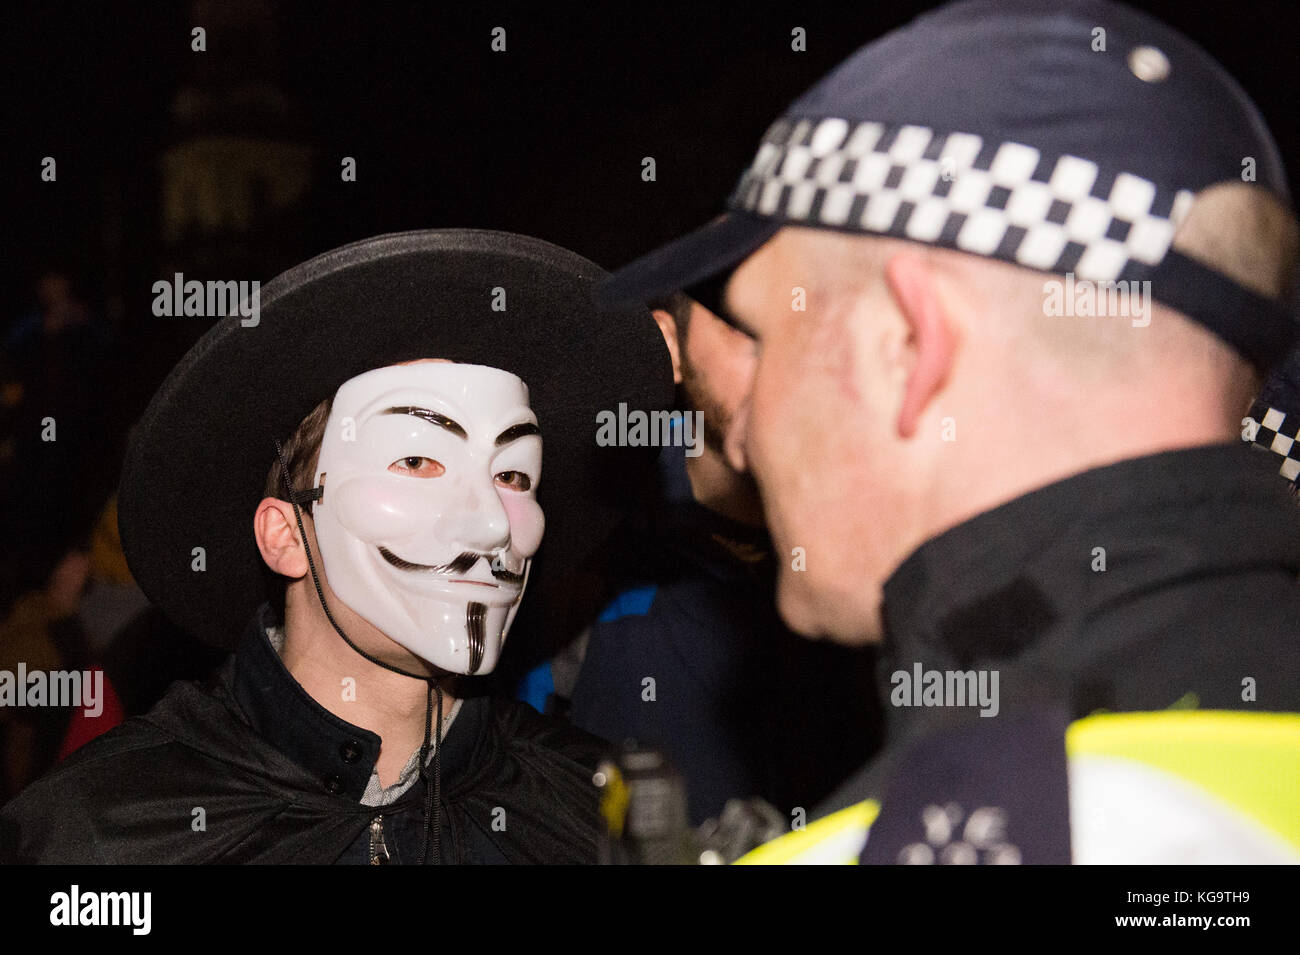 London, United Kingdom. 05th Nov, 2017. Million Mask March 2017 takes place in central London.A protester in a Guy - Stock Image